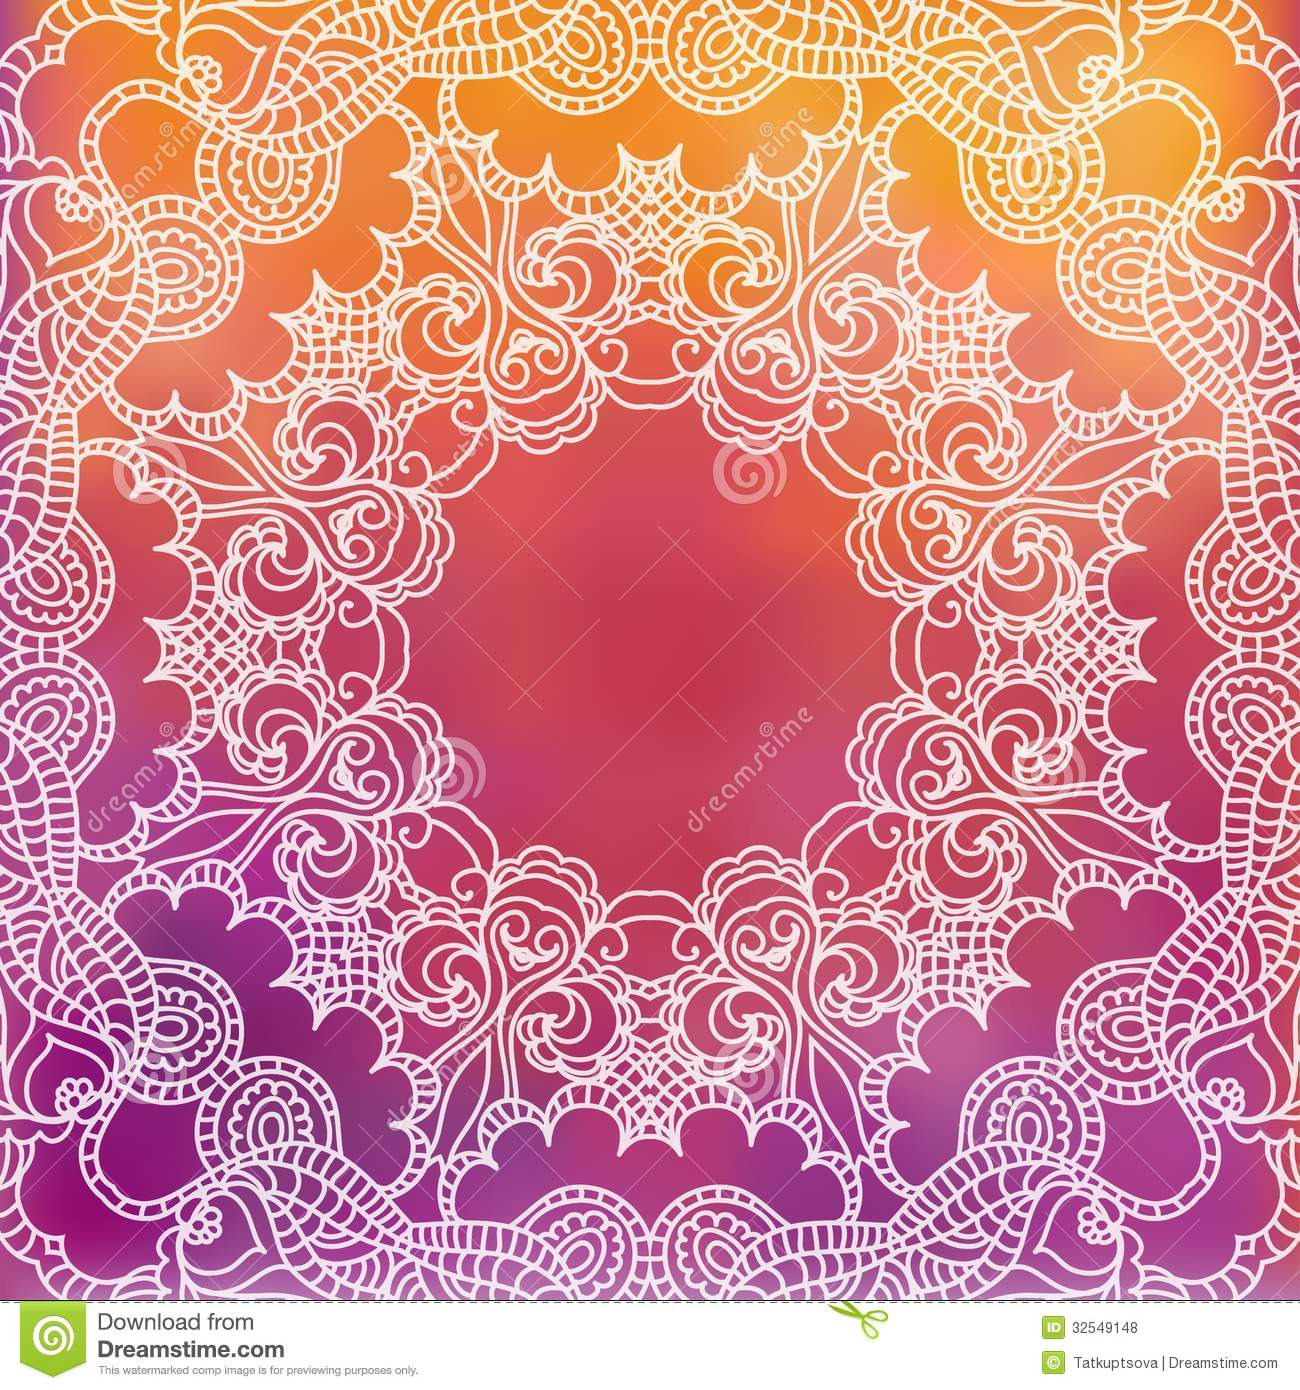 Indian Patterns And Designs Backgrounds